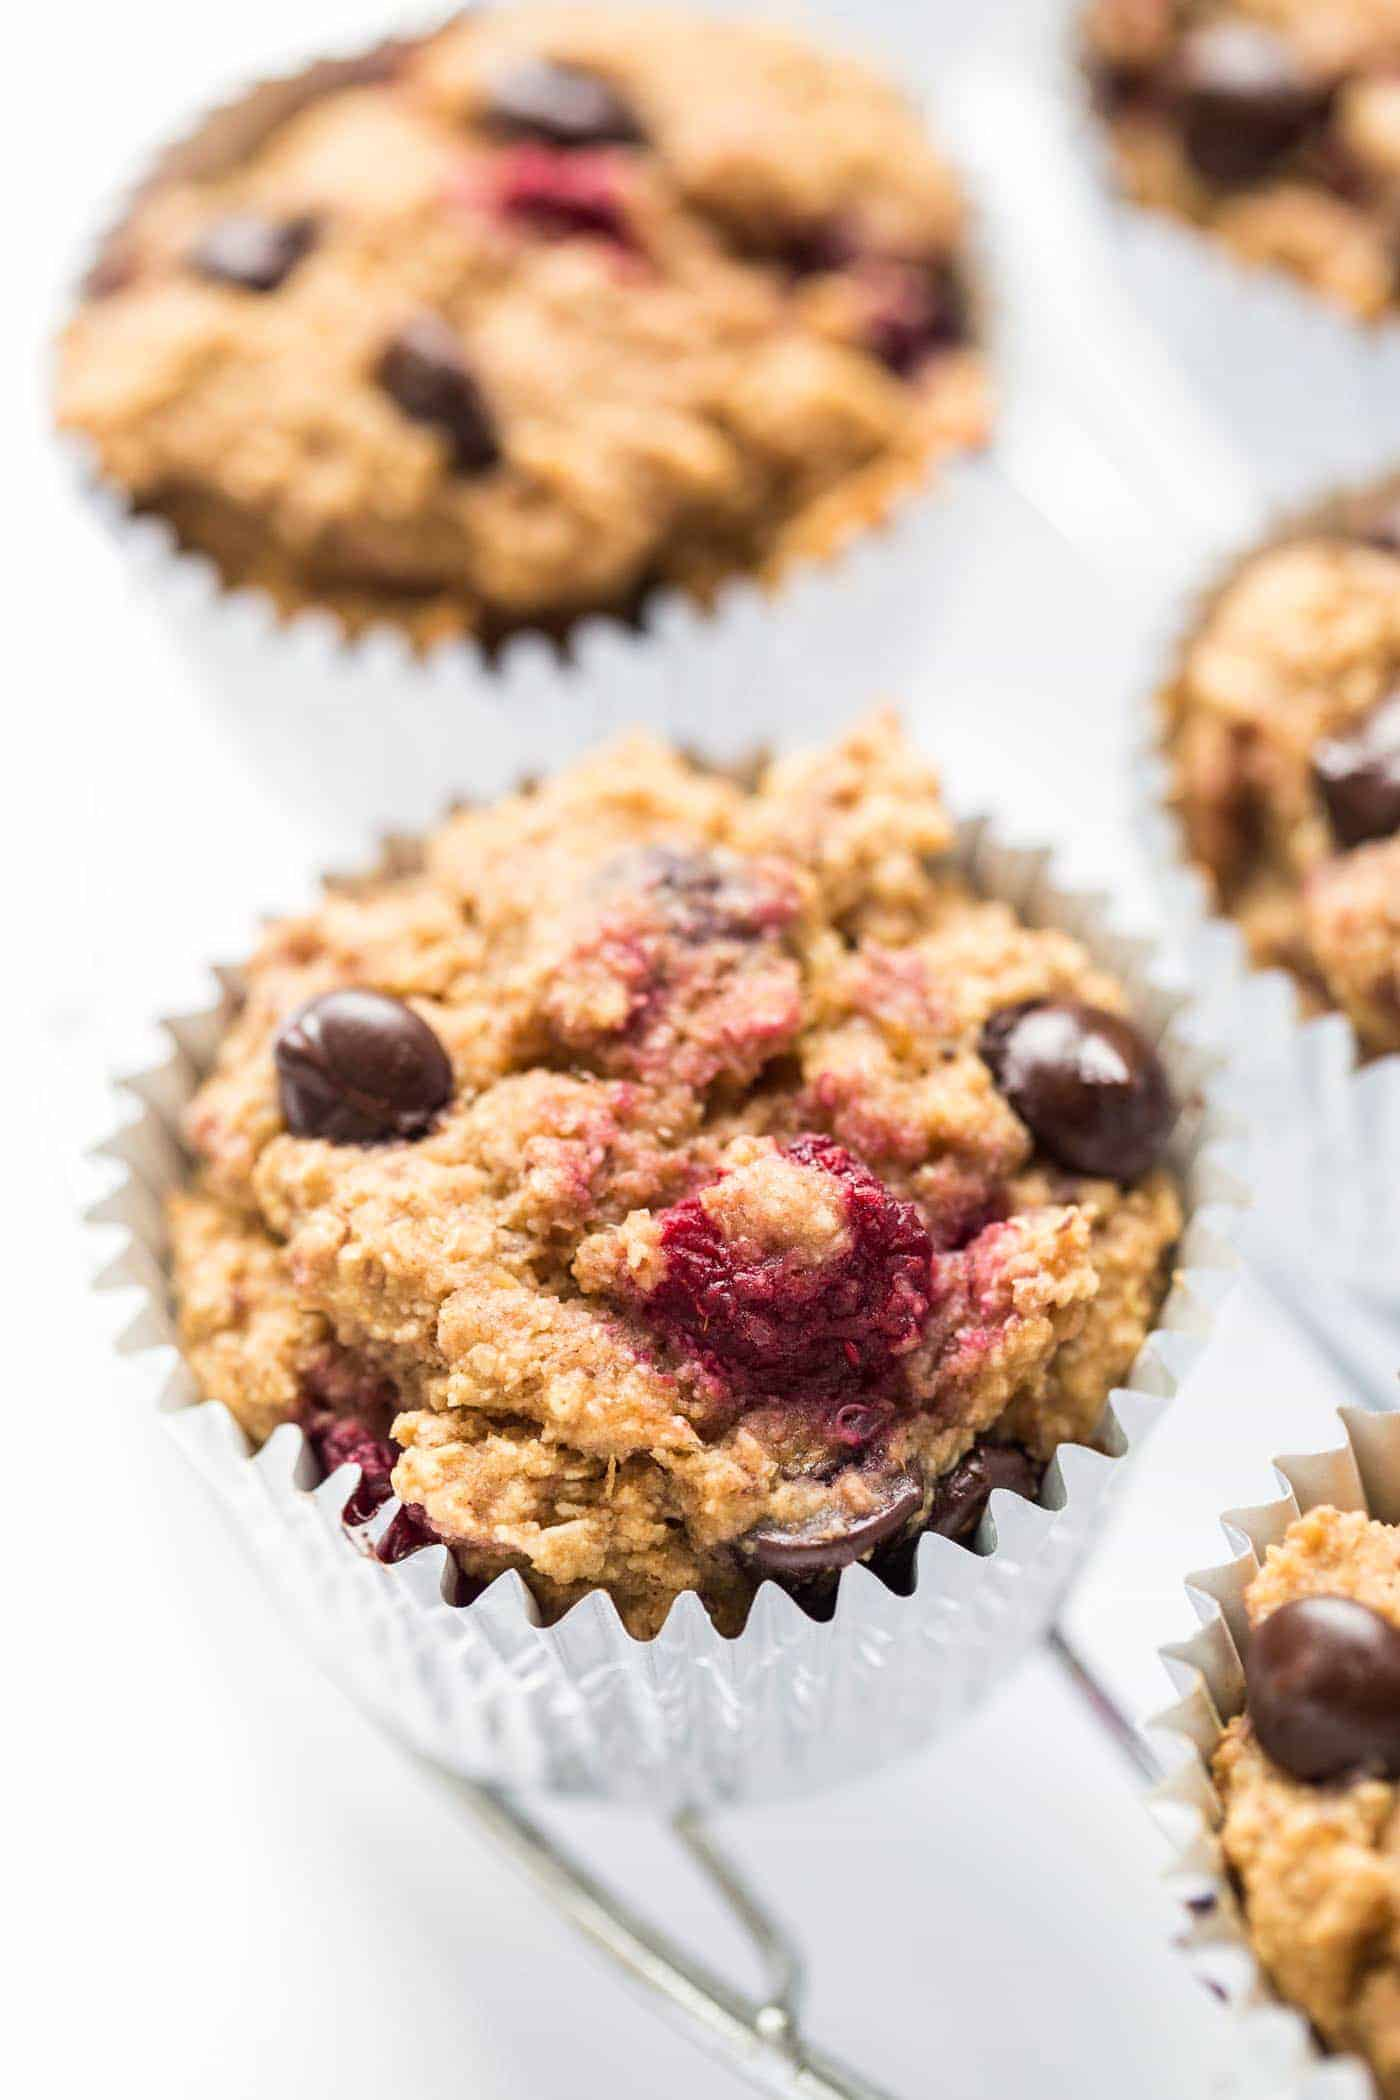 These SKINNY Raspberry Chocolate Chip Quinoa Muffins are made in just one bowl, packed with healthy ingredients and don't use any oil, eggs or dairy!